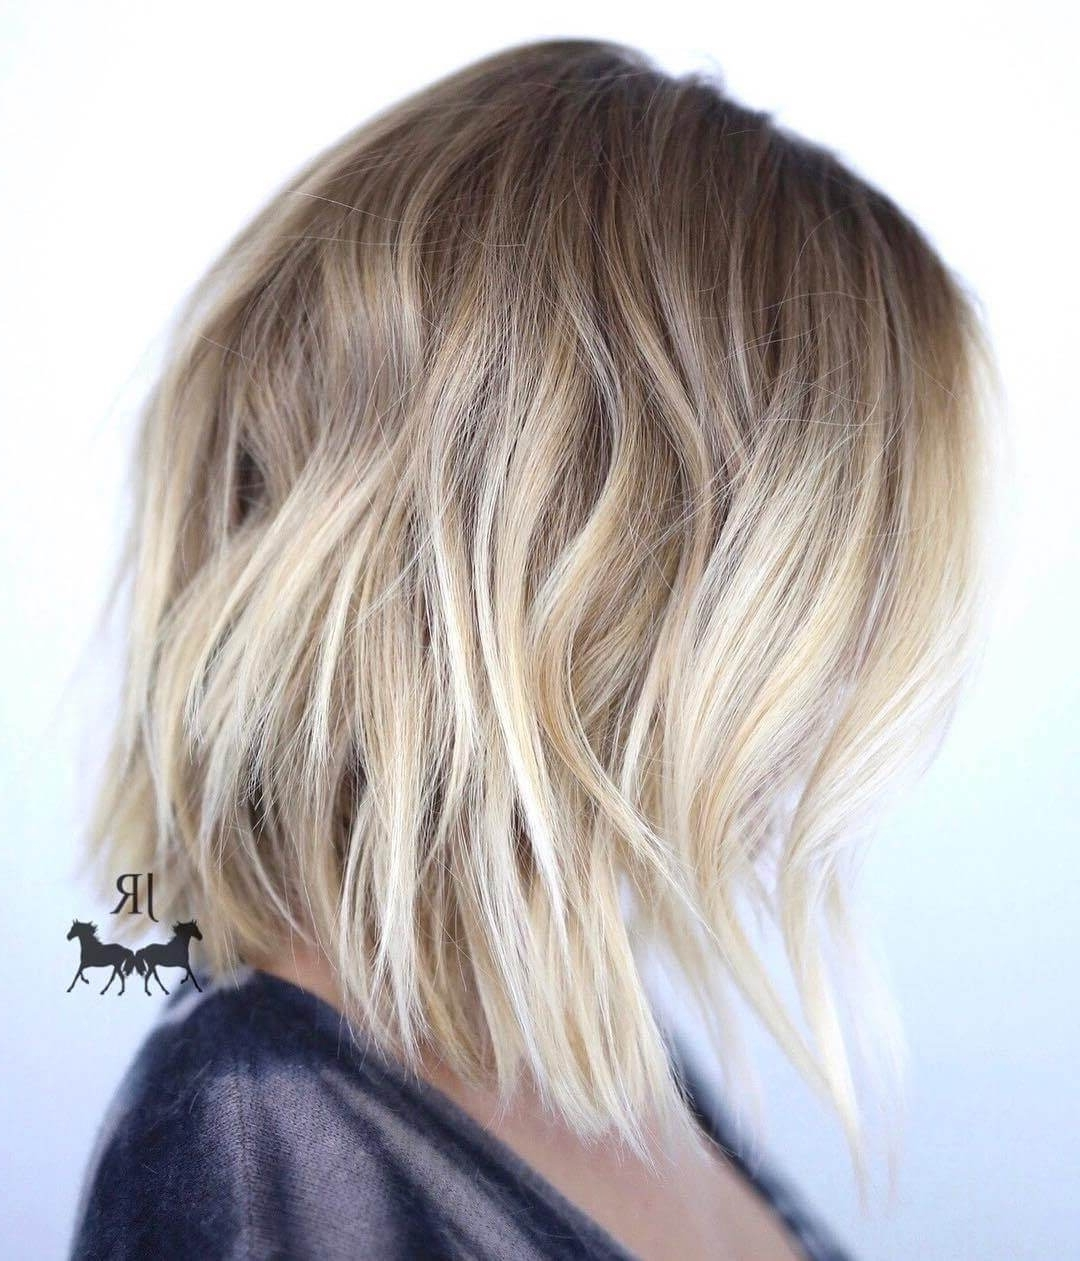 Recent Angled Wavy Lob Blonde Hairstyles With 50 Fresh Short Blonde Hair Ideas To Update Your Style In (View 10 of 20)